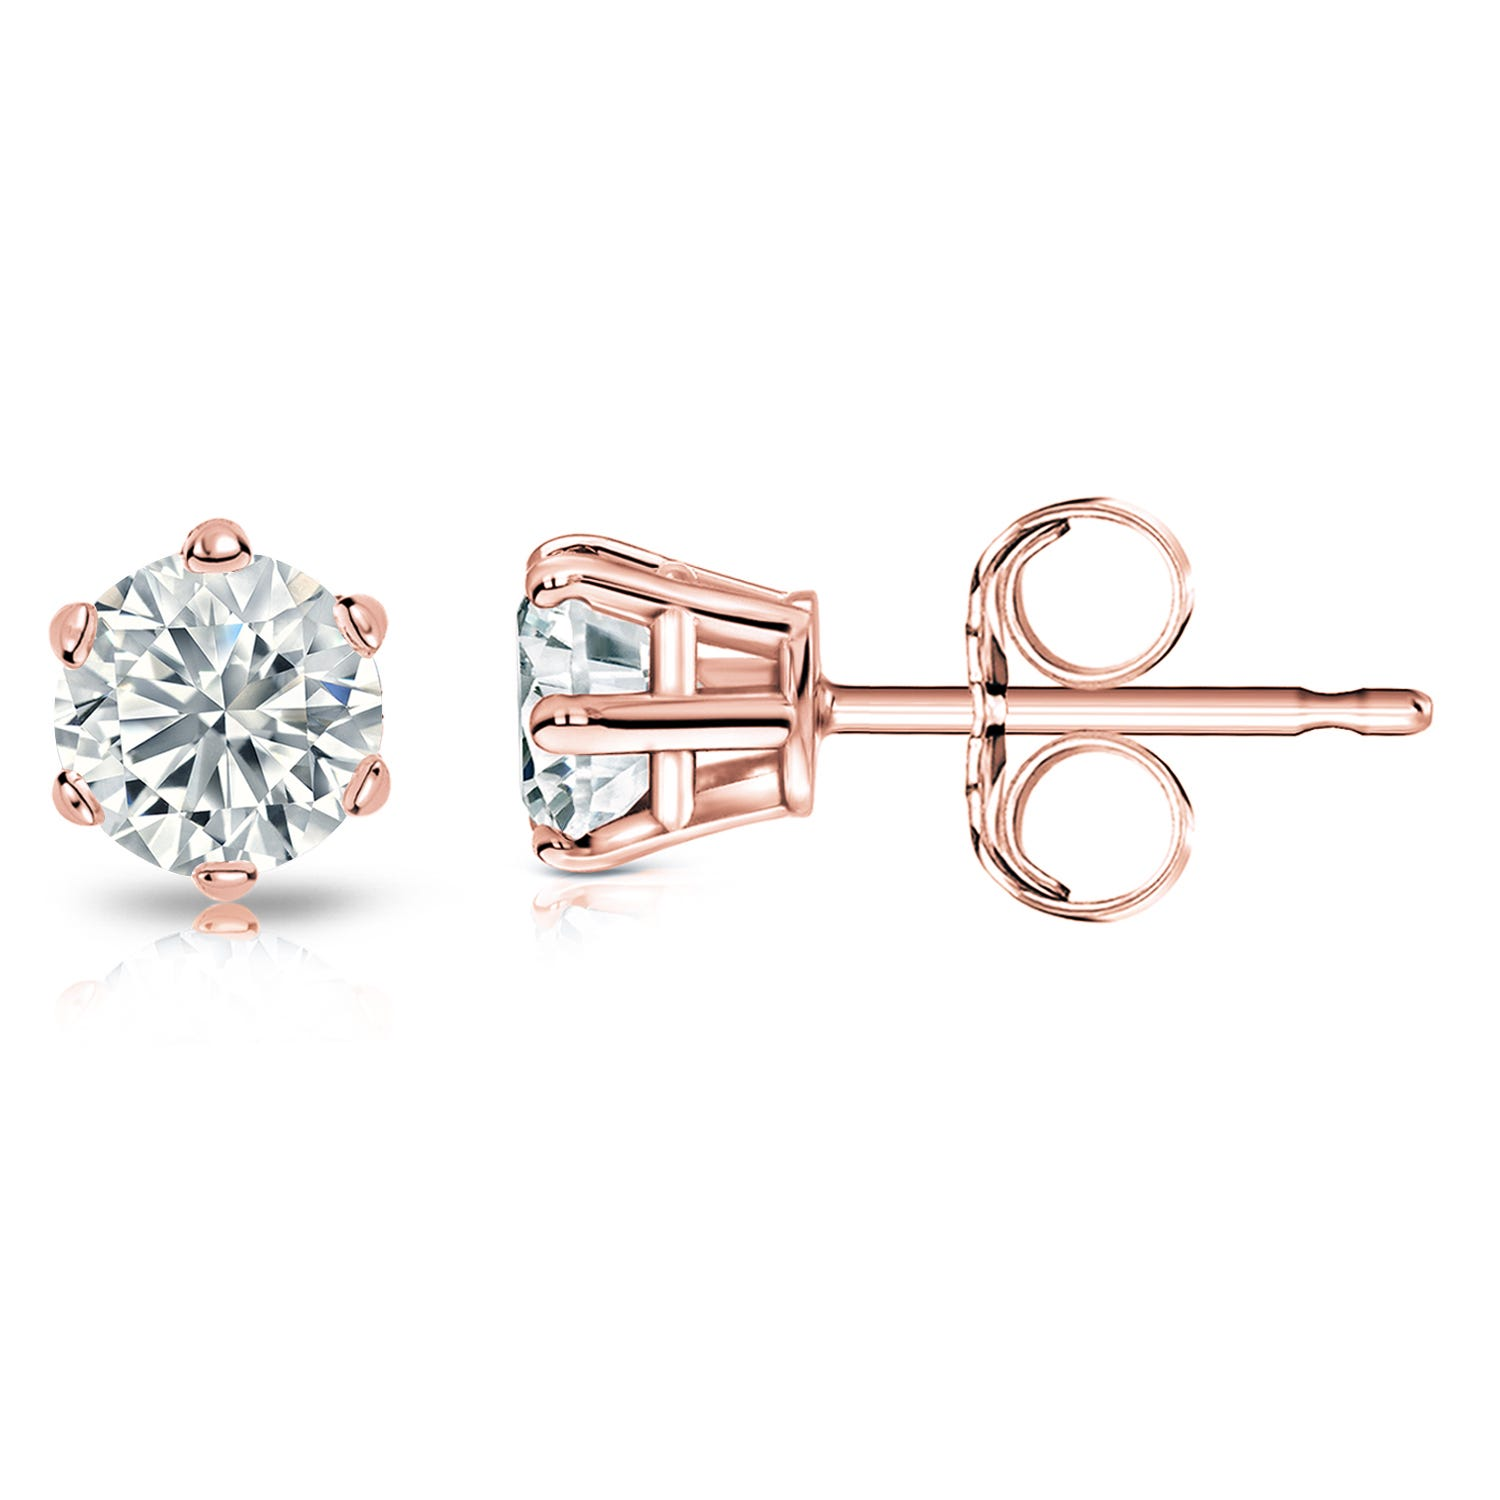 Round Diamond 1ctw. (IJ-I2) Solitaire Stud 6-Prong Earrings in 14K Rose Gold